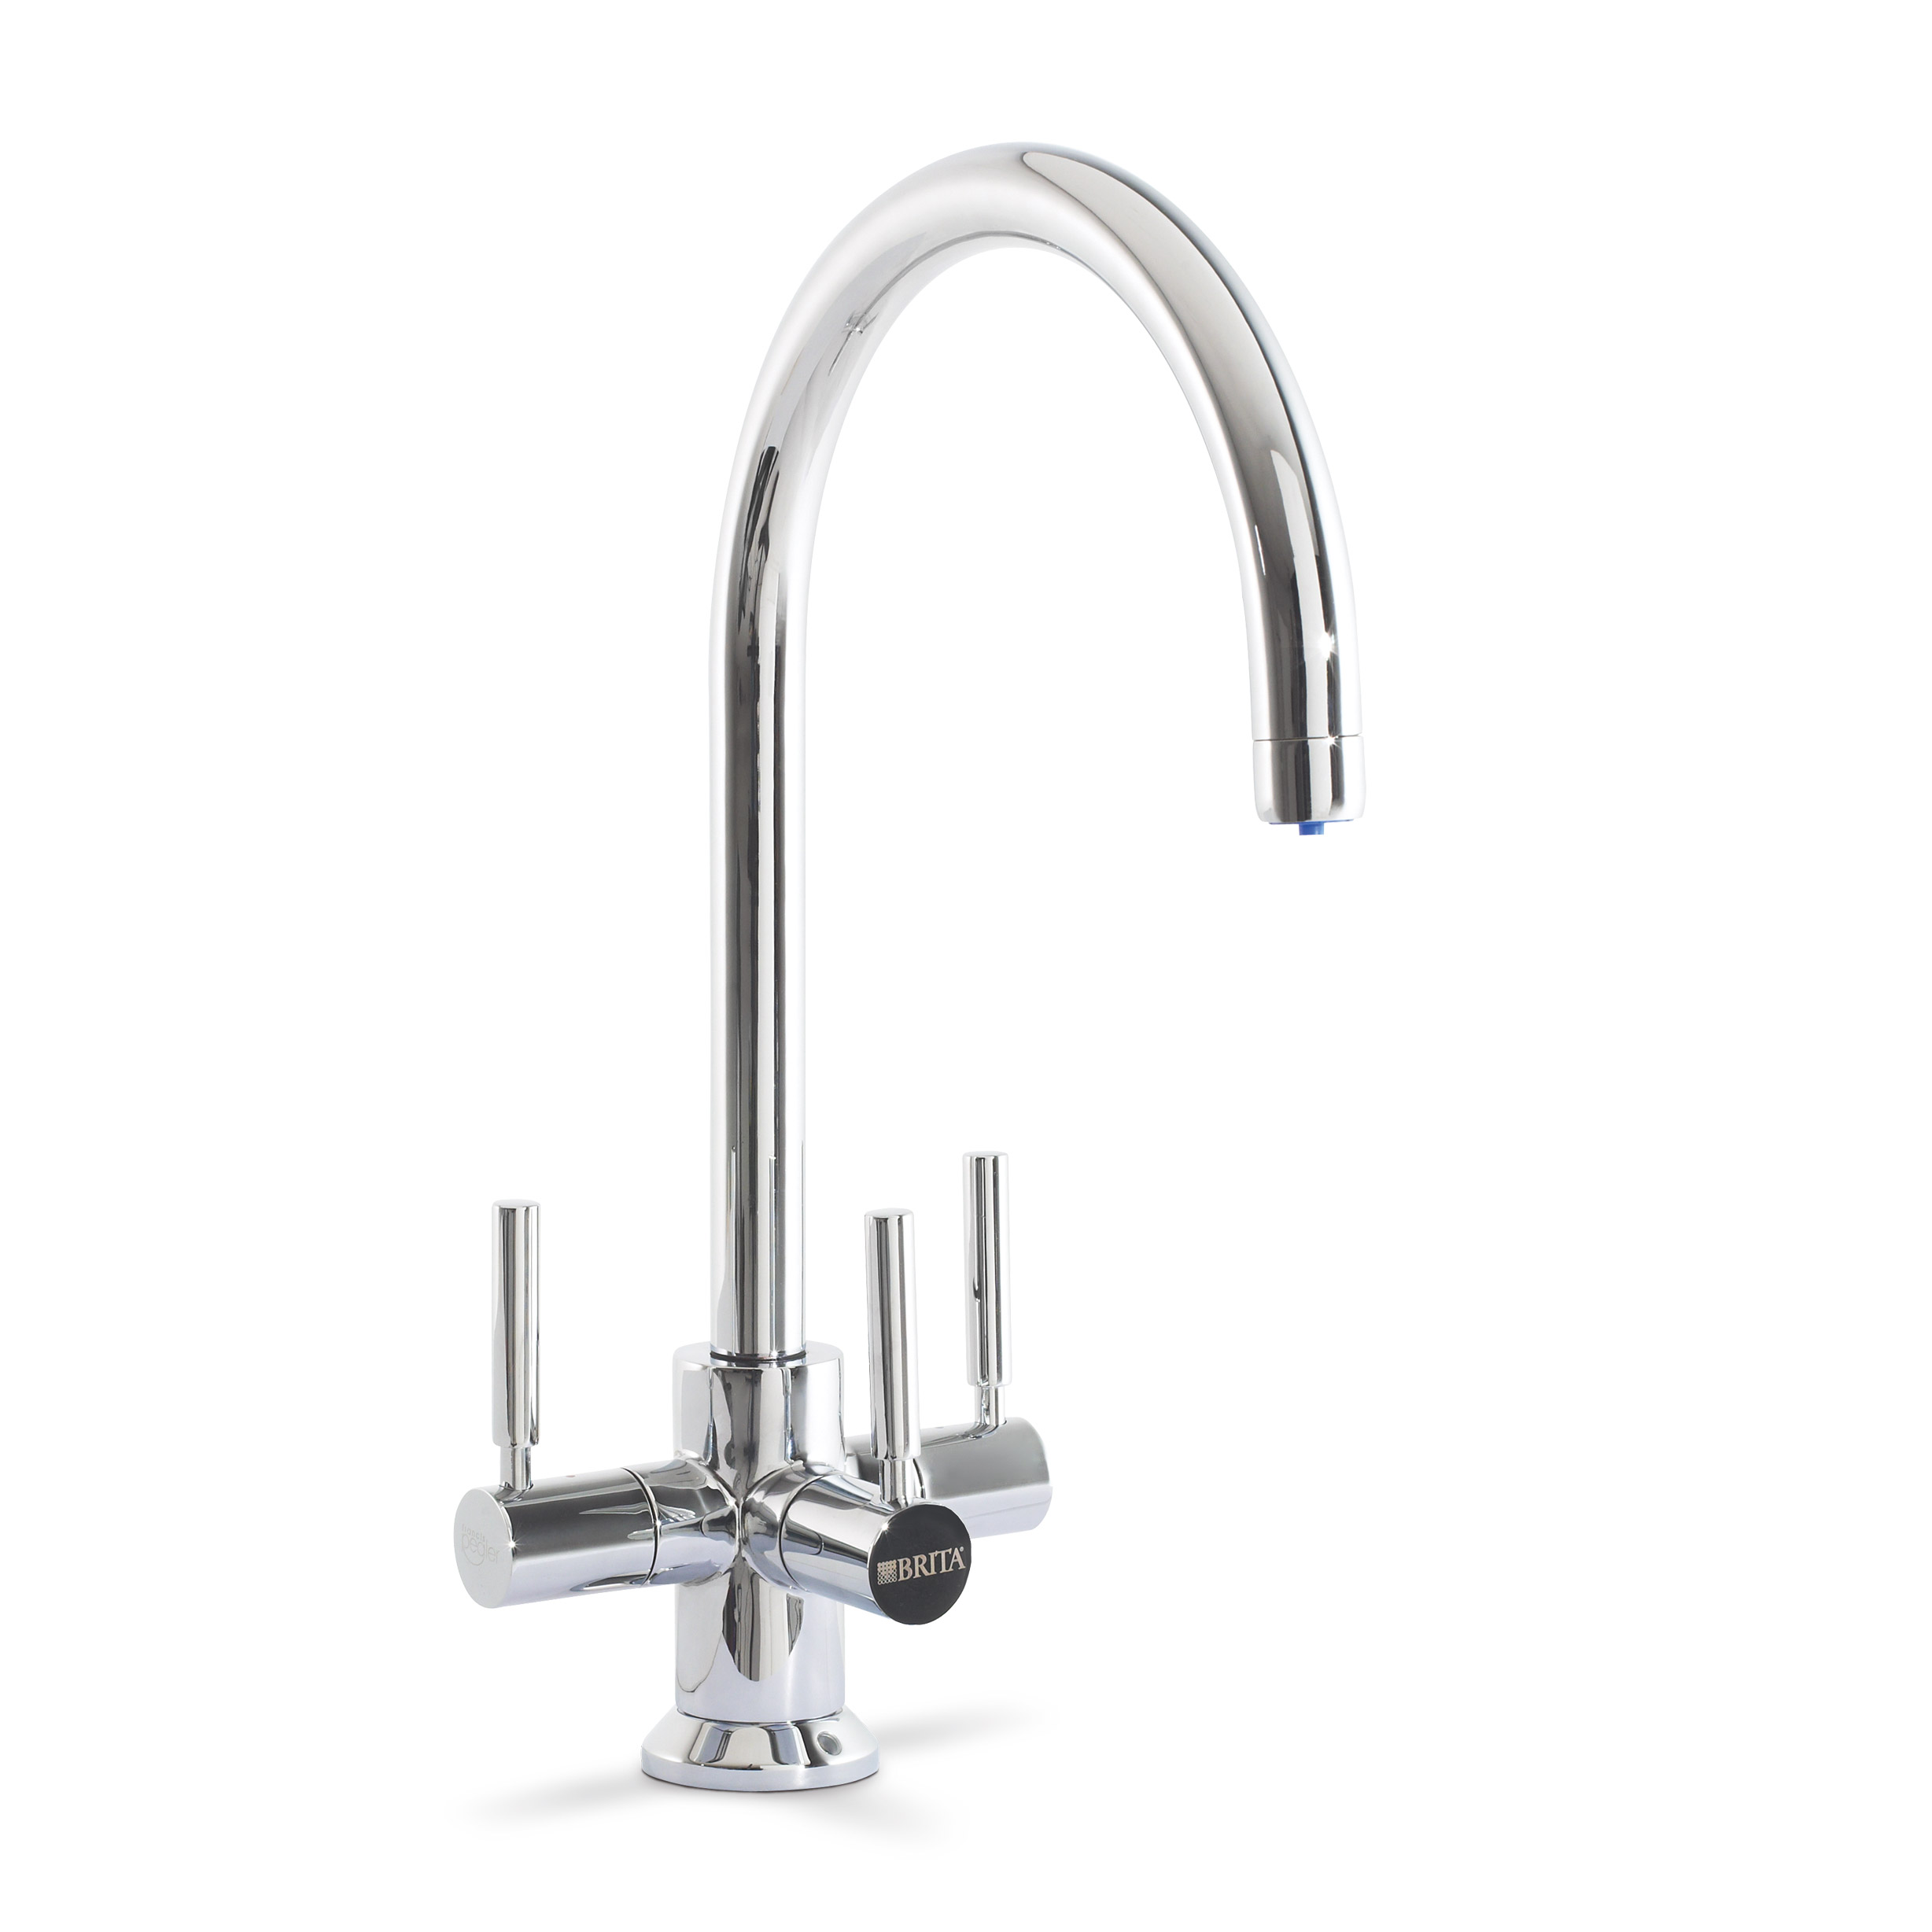 water filter for pull down faucet. Brita Ceto Chrome 3 Way Dispenser Water Filter System BRITA Talori Brushed Tap Review  WaterFilterShop Co Uk Blog